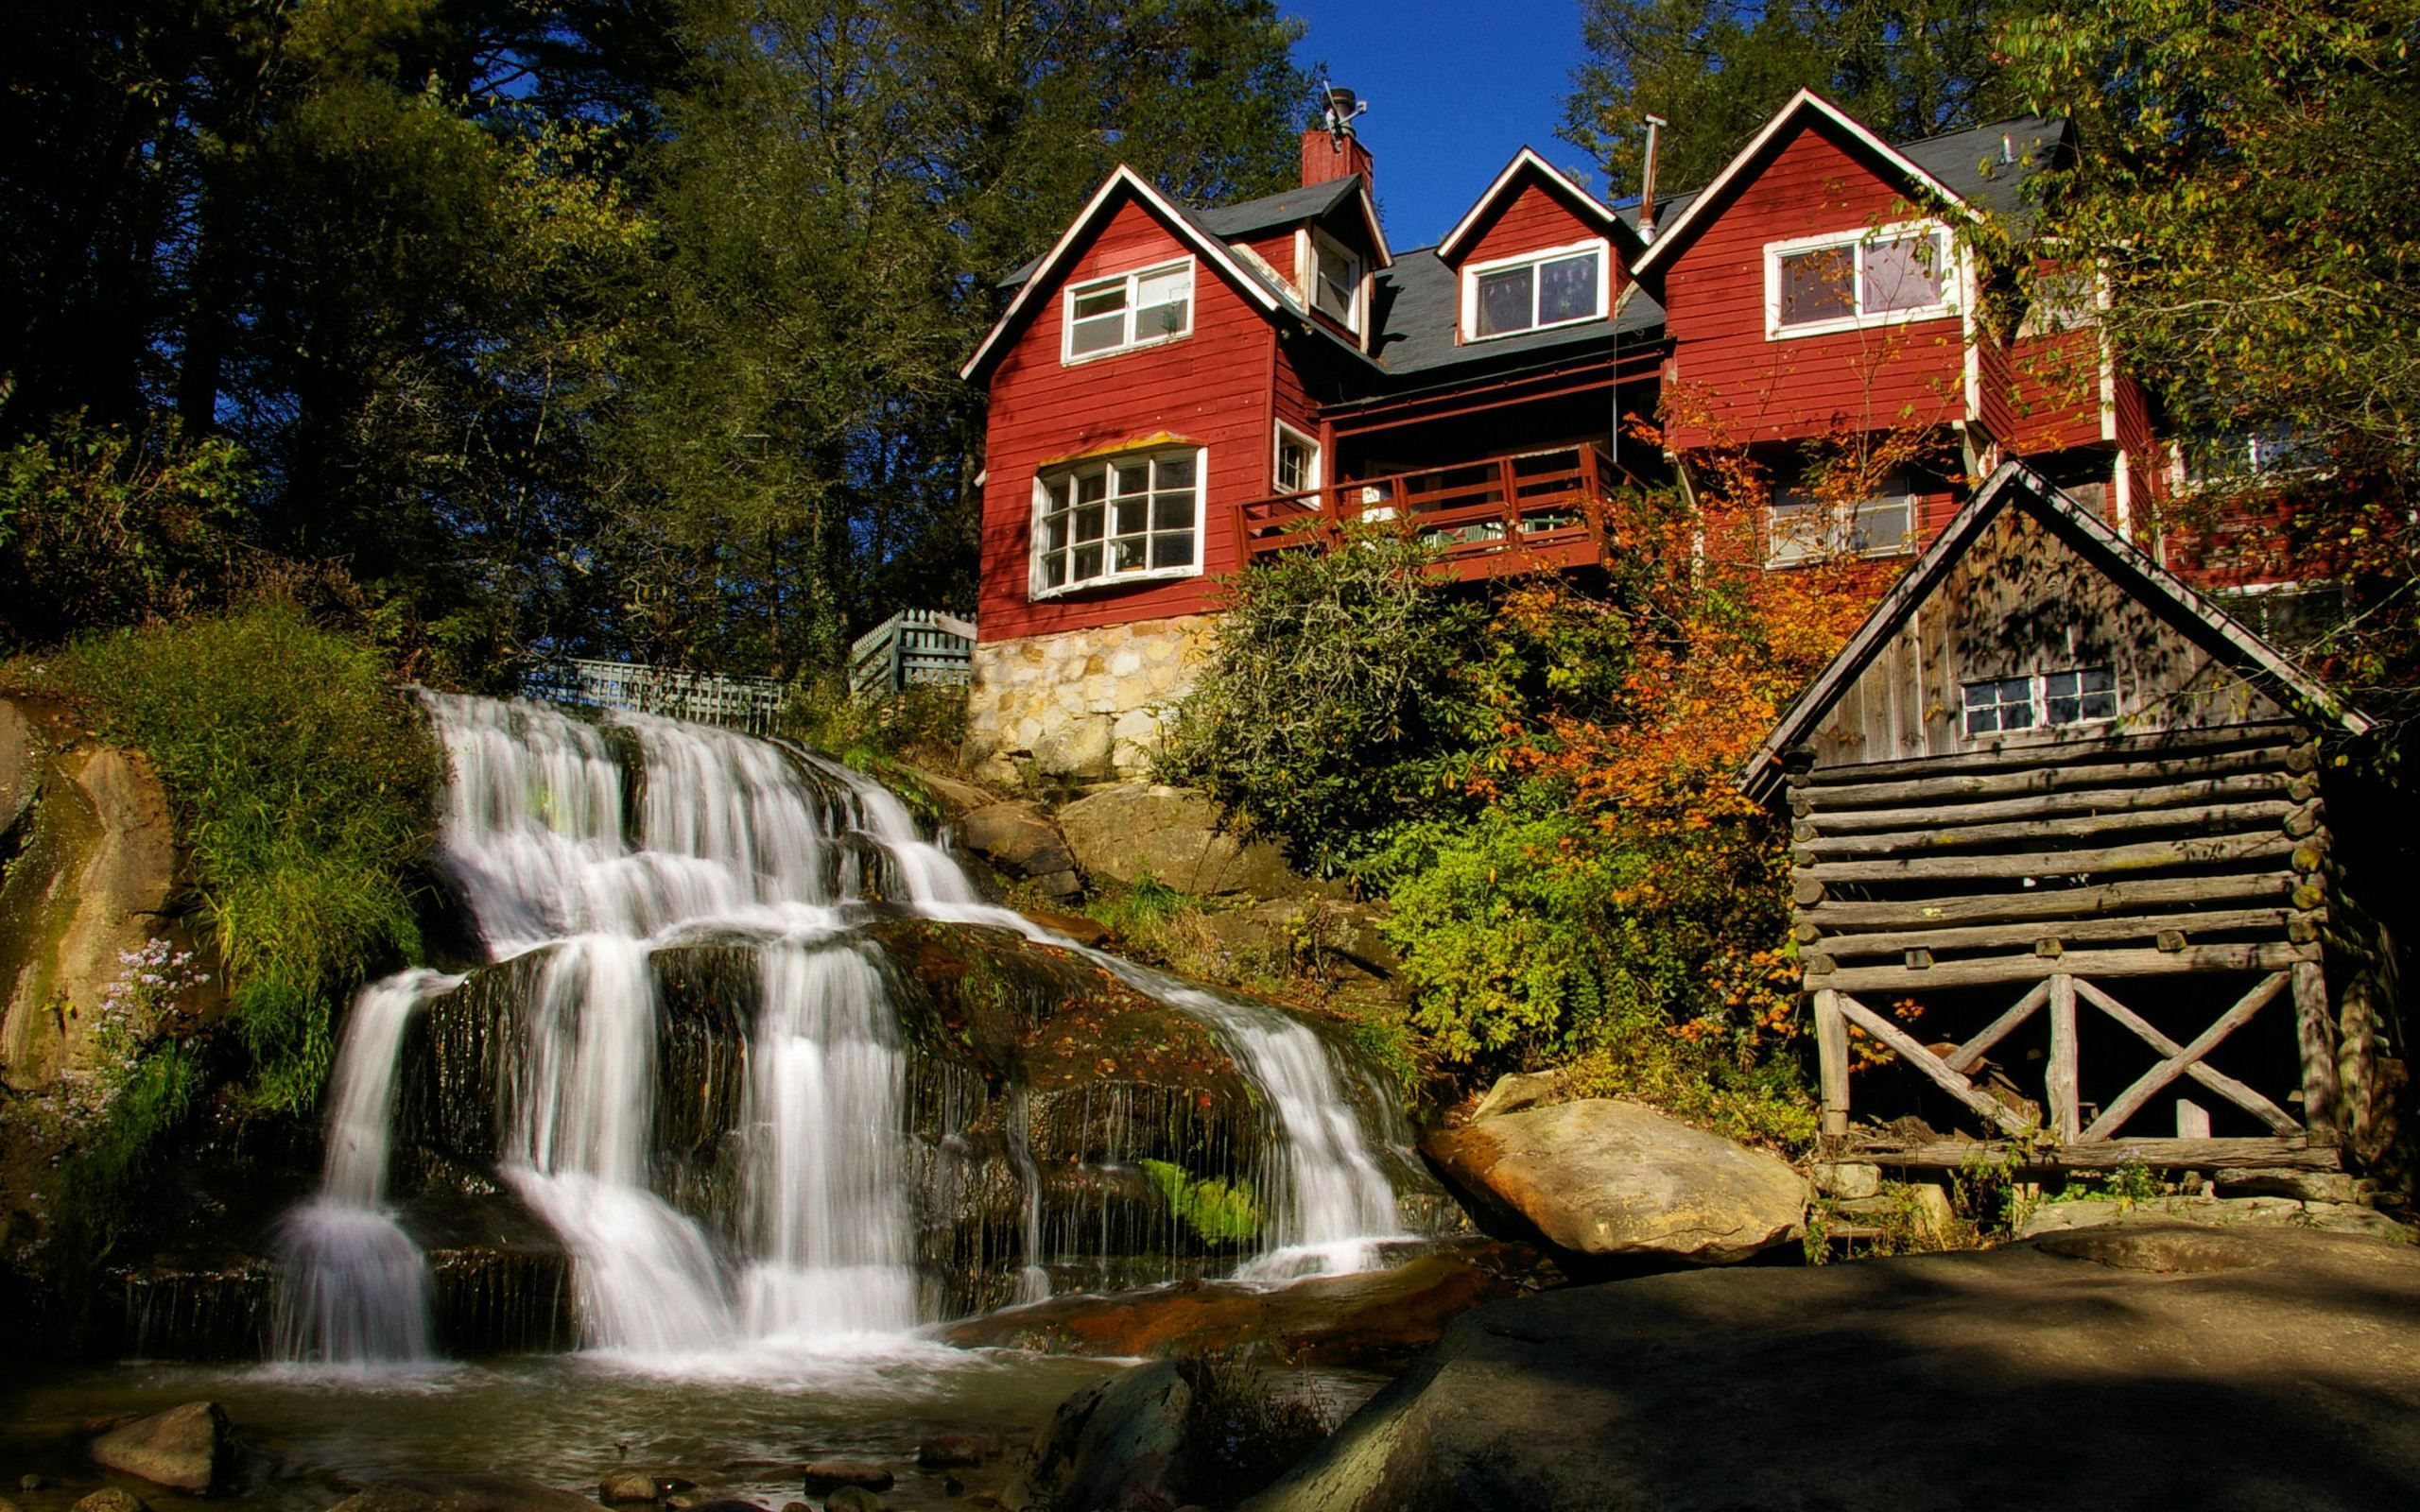 waterfall  architecture  beautiful  beauty  colors  fall  flowers  grass  green  house  houses